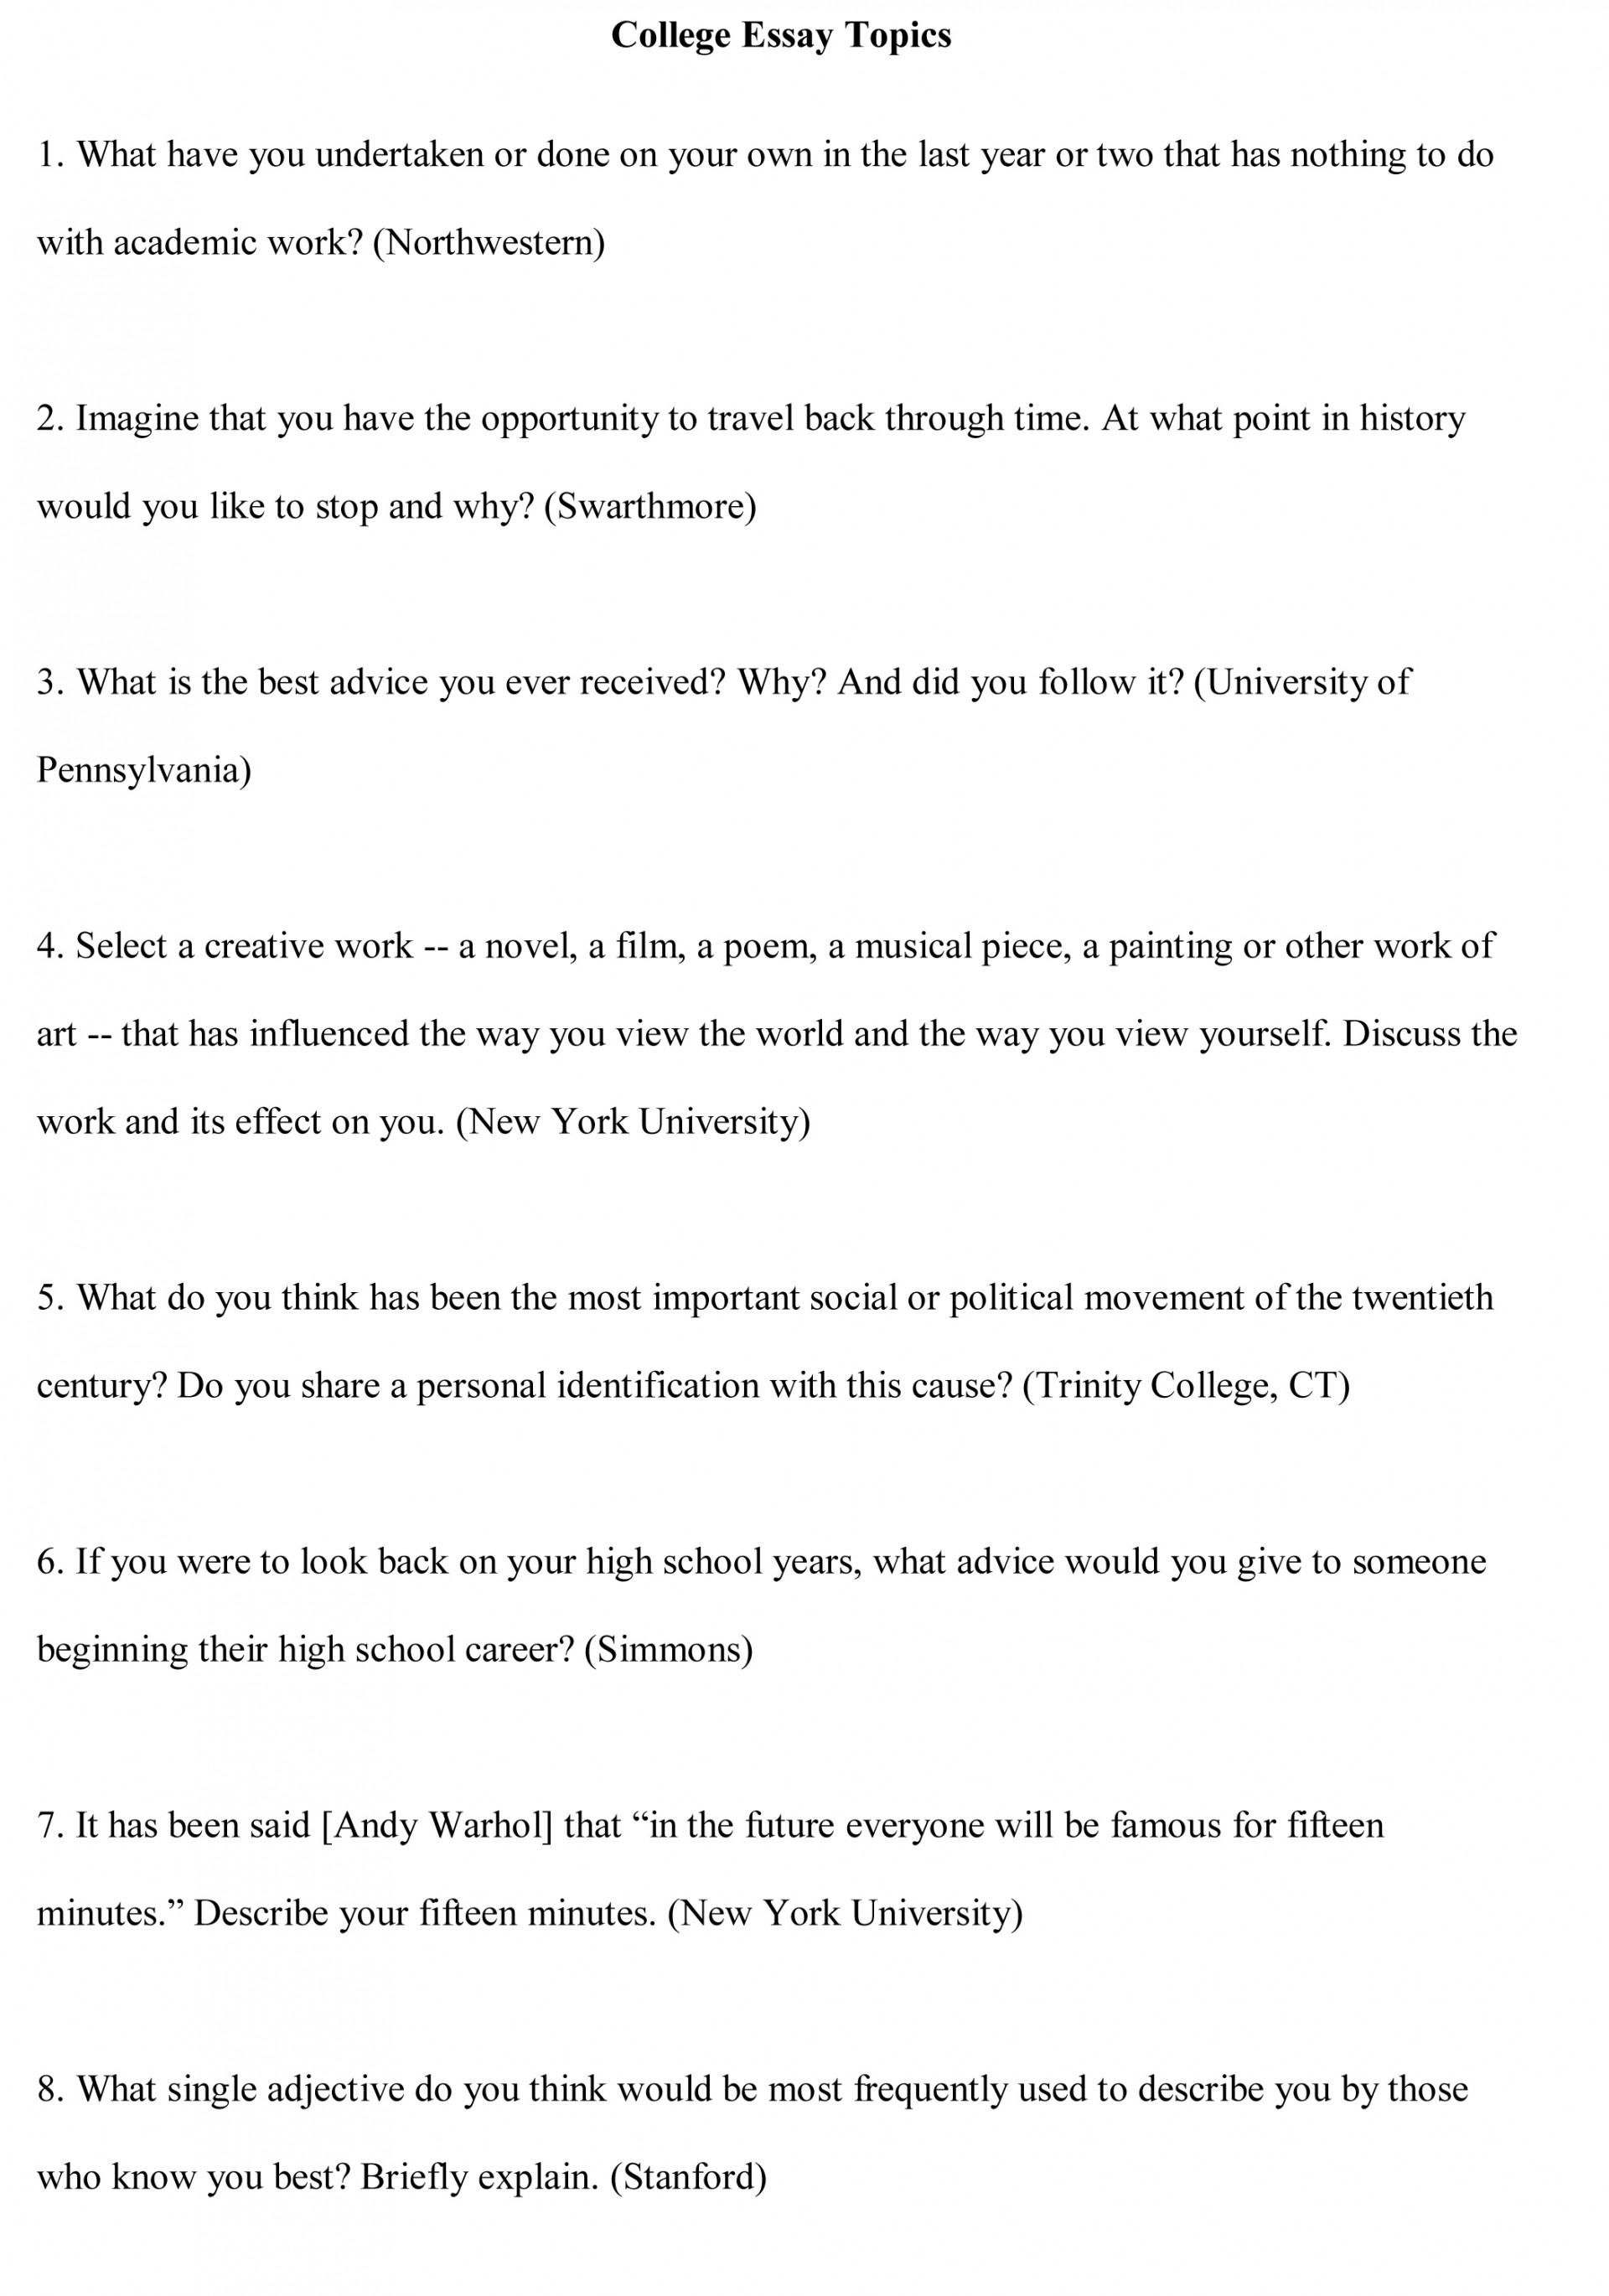 005 College Essay Prompt Examples Example Topics Free Unforgettable Uc #1 Writing 2 1920